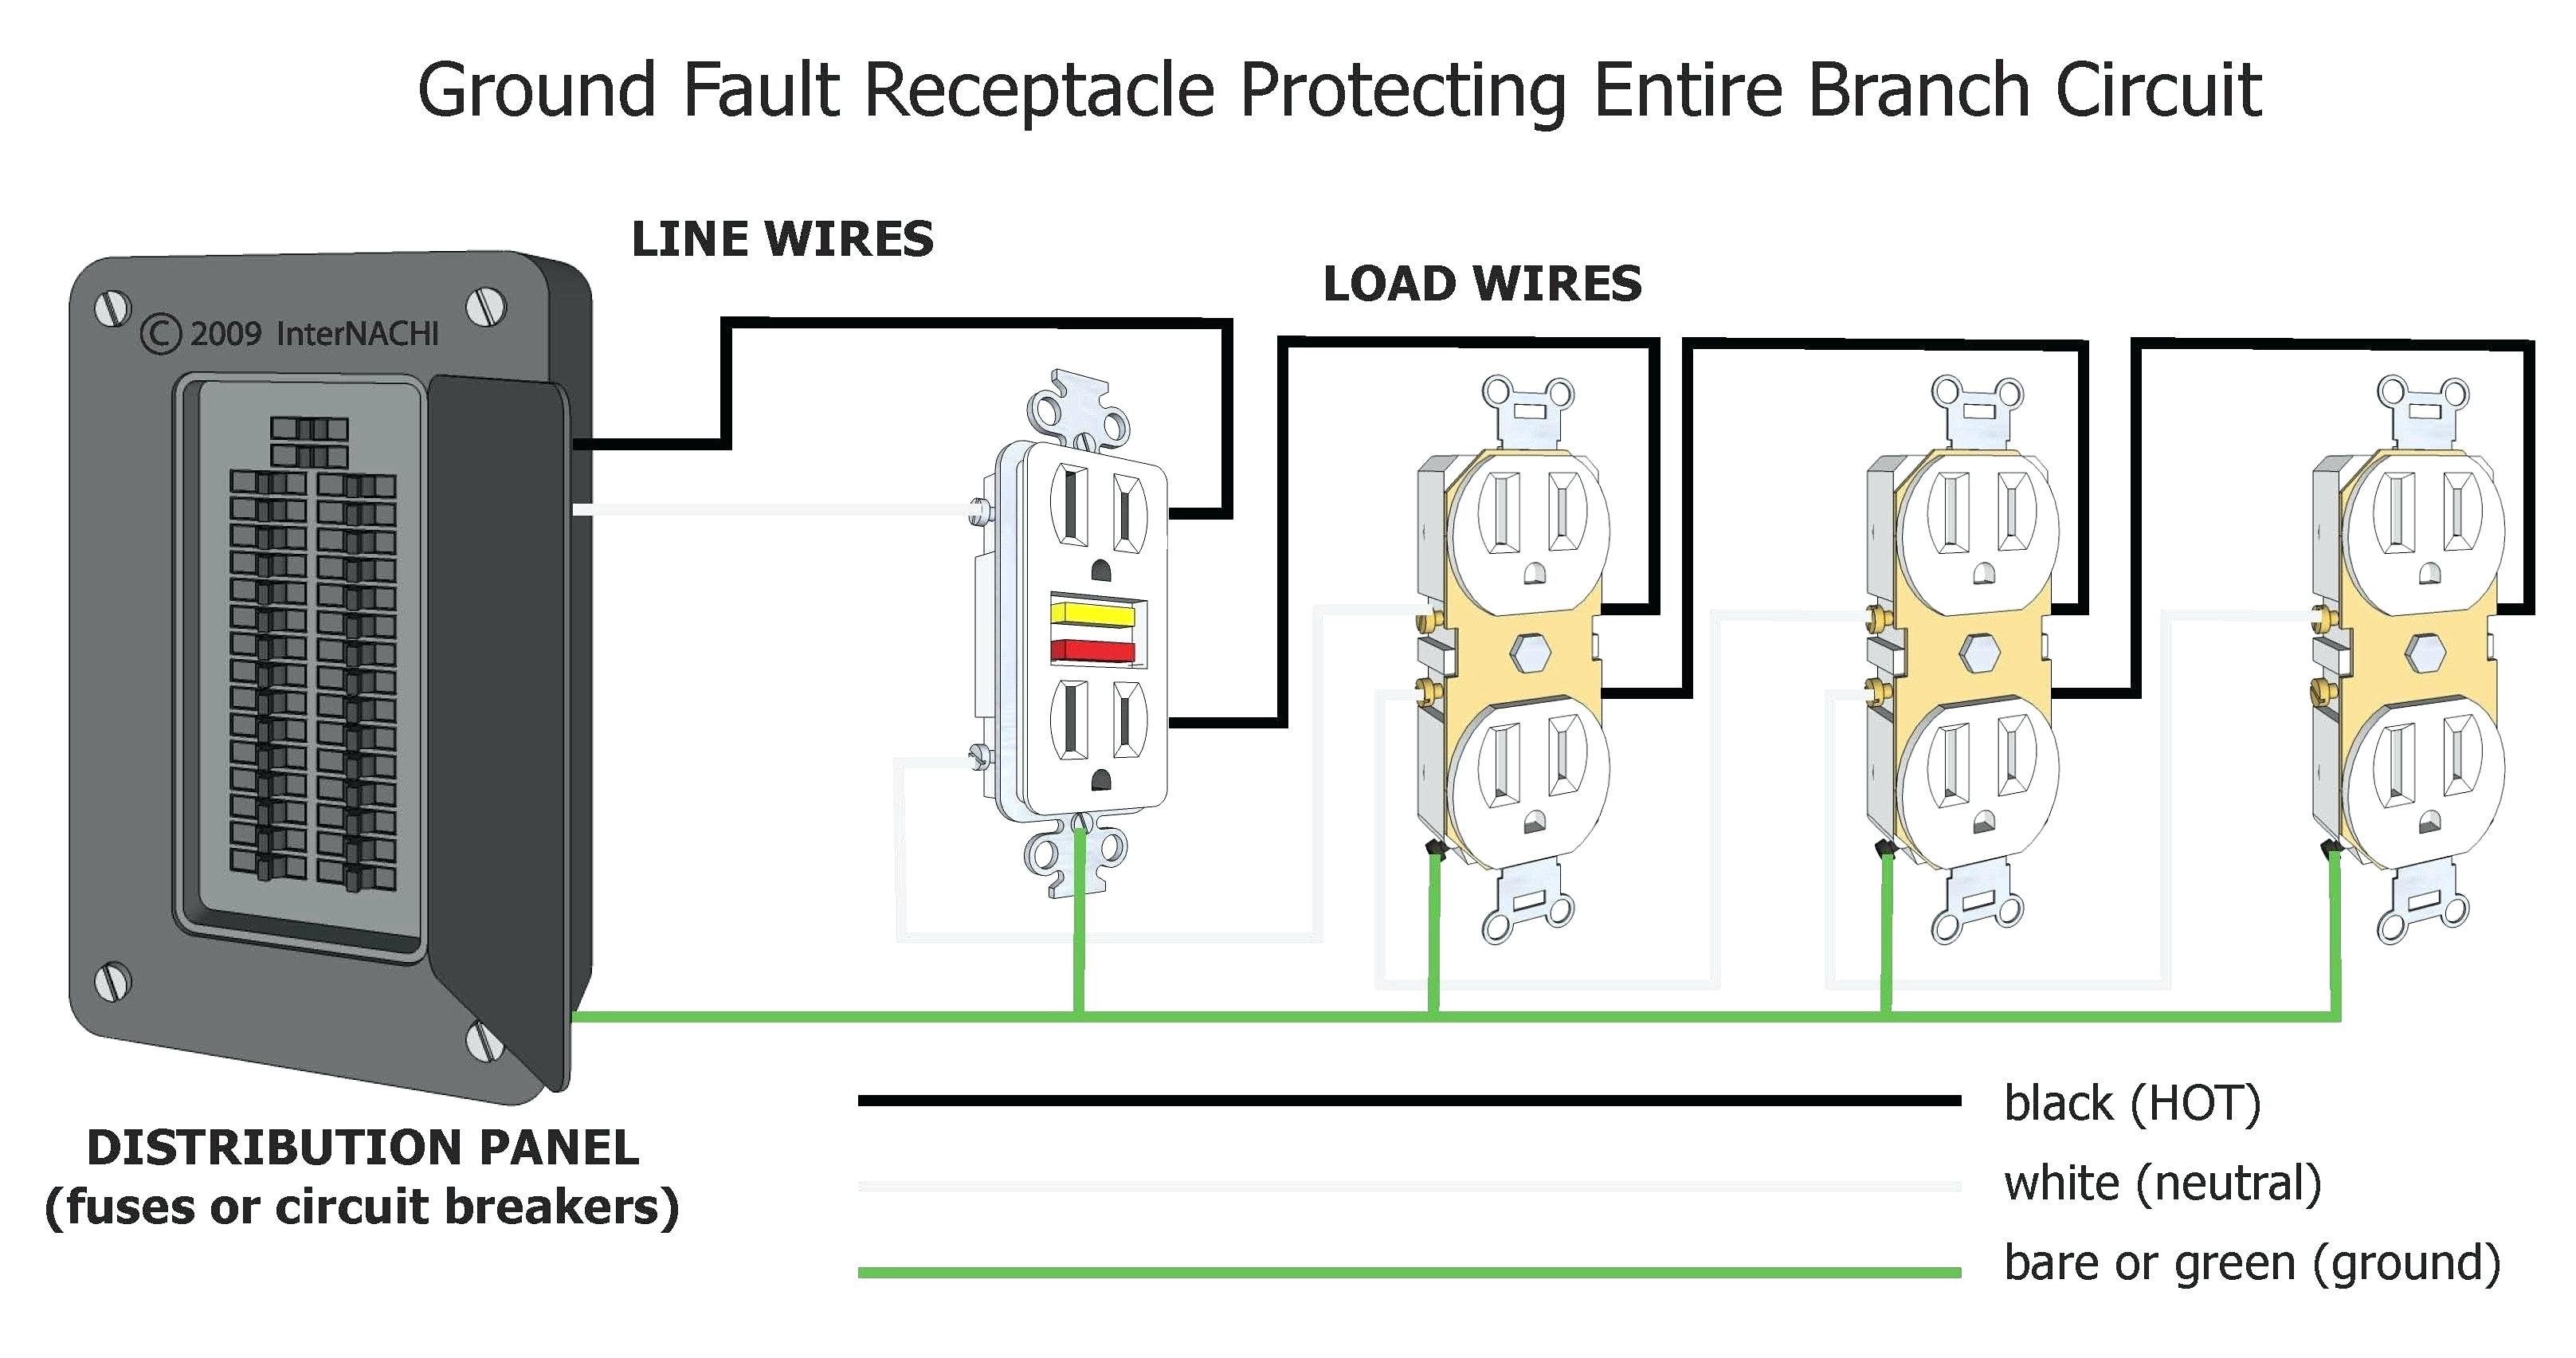 homeline breaker box wiring diagram Collection-Wiring Diagram For 30 Amp Breaker Box Inspirationa Homeline Breaker Box Wiring Diagram Circuit Amp Panel A Full Size 14-j